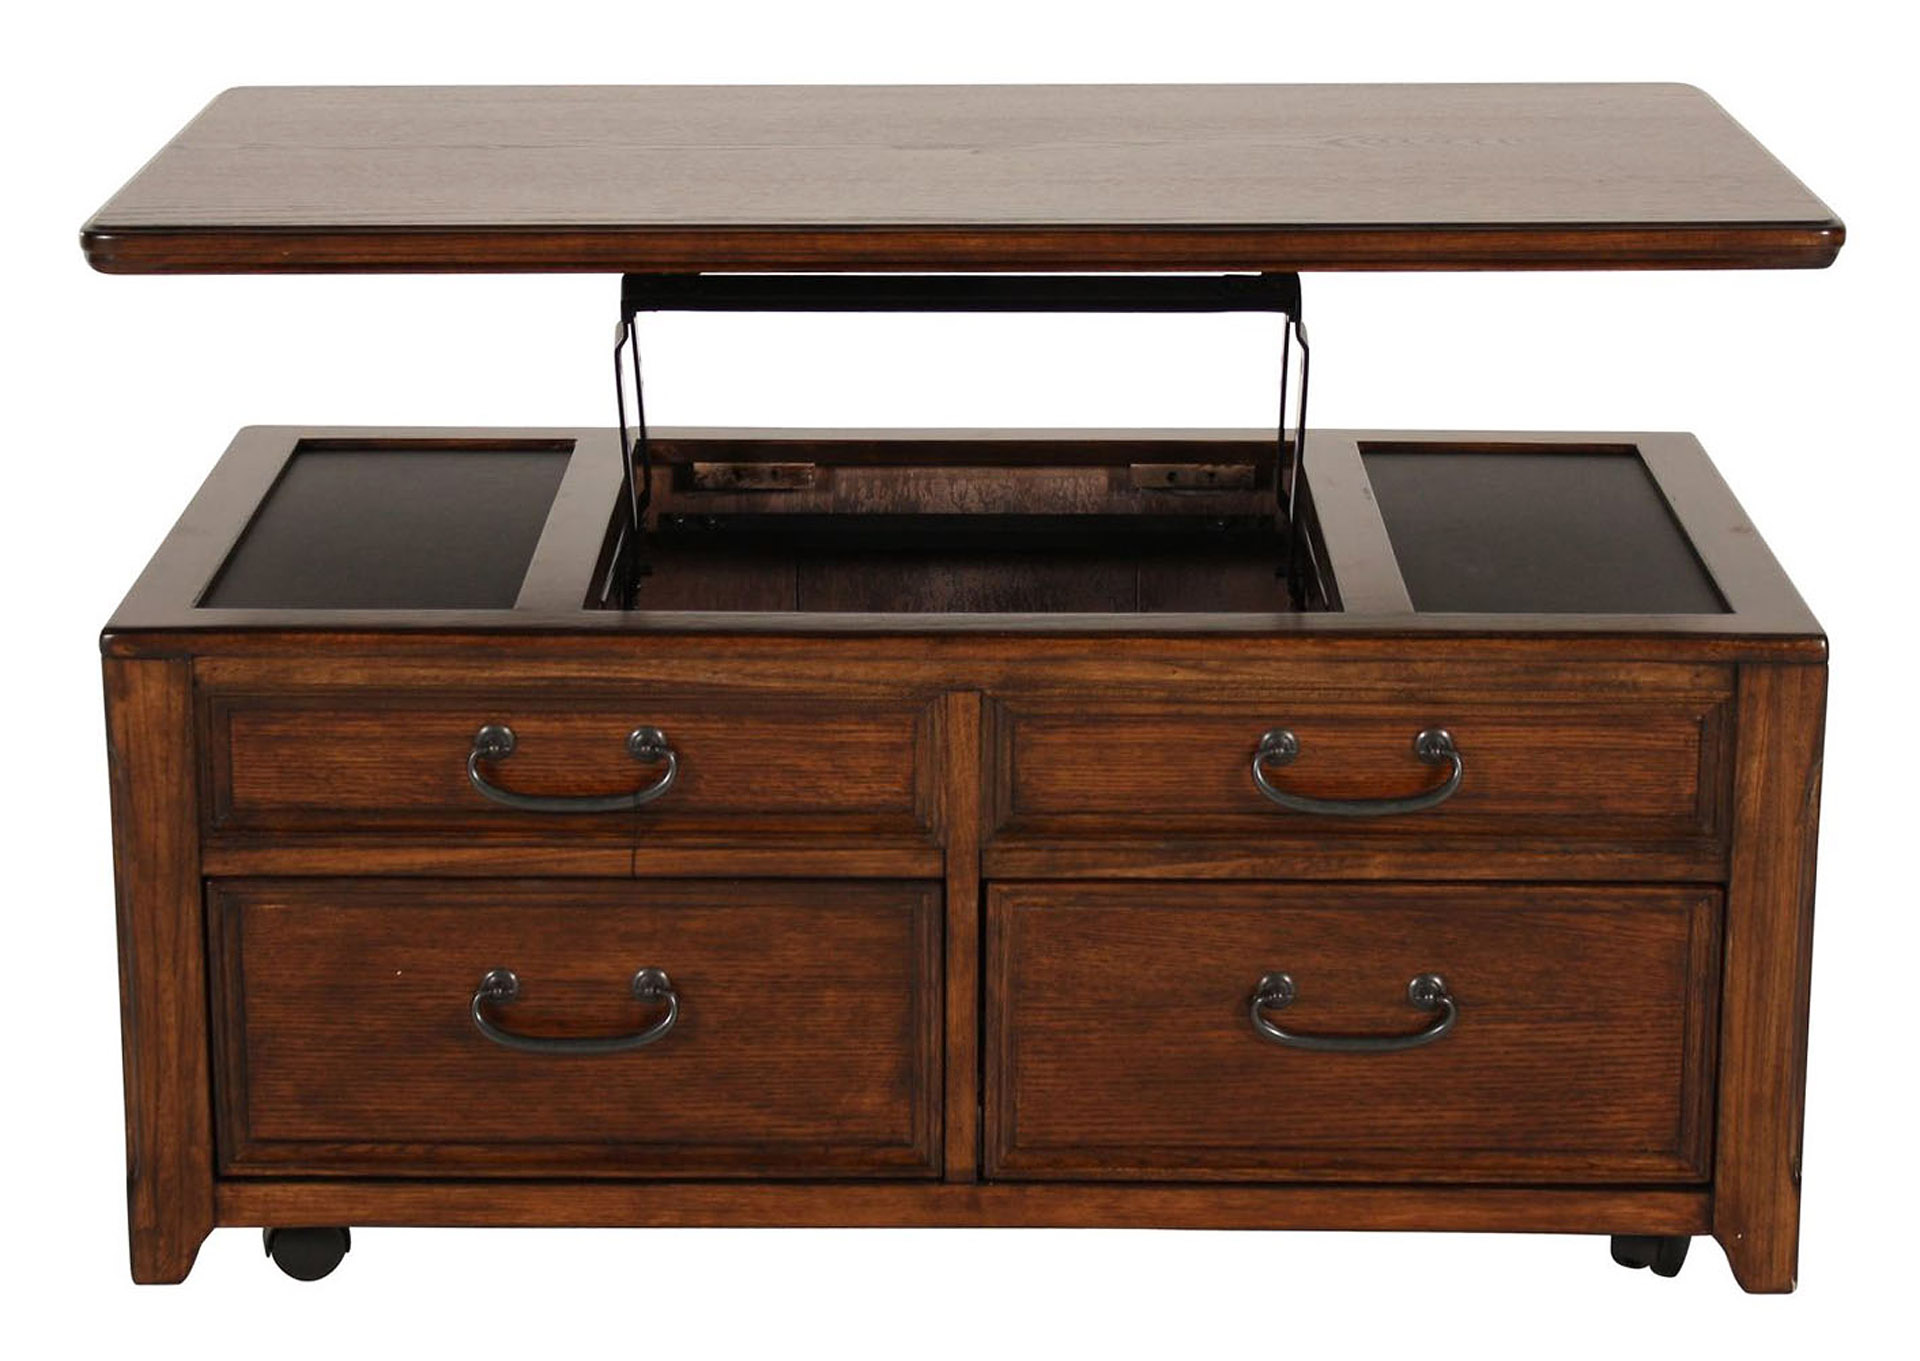 WOODBORO LIFT TOP COCKTAIL TABLE,ASHLEY FURNITURE INC.